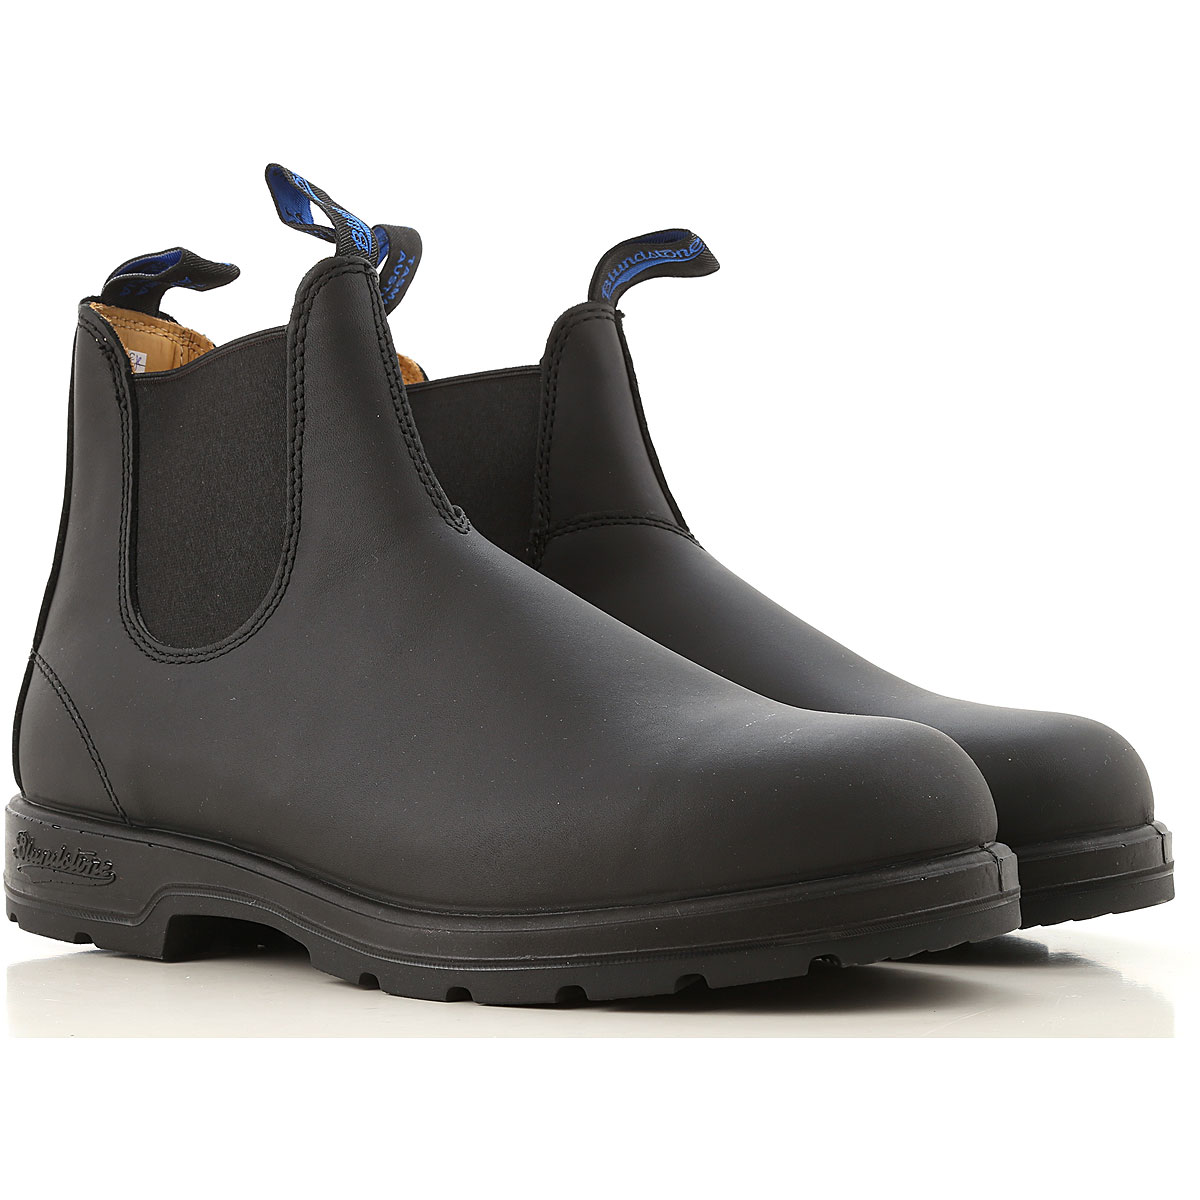 Blundstone Boots for Men, Booties On Sale, Black, Leather, 2019, AU/UK 7 - US 8 AU/UK 9 - US 10 AU/UK 10 - US 11 AU/UK 11 - US 12 AU/UK 12 - US 13